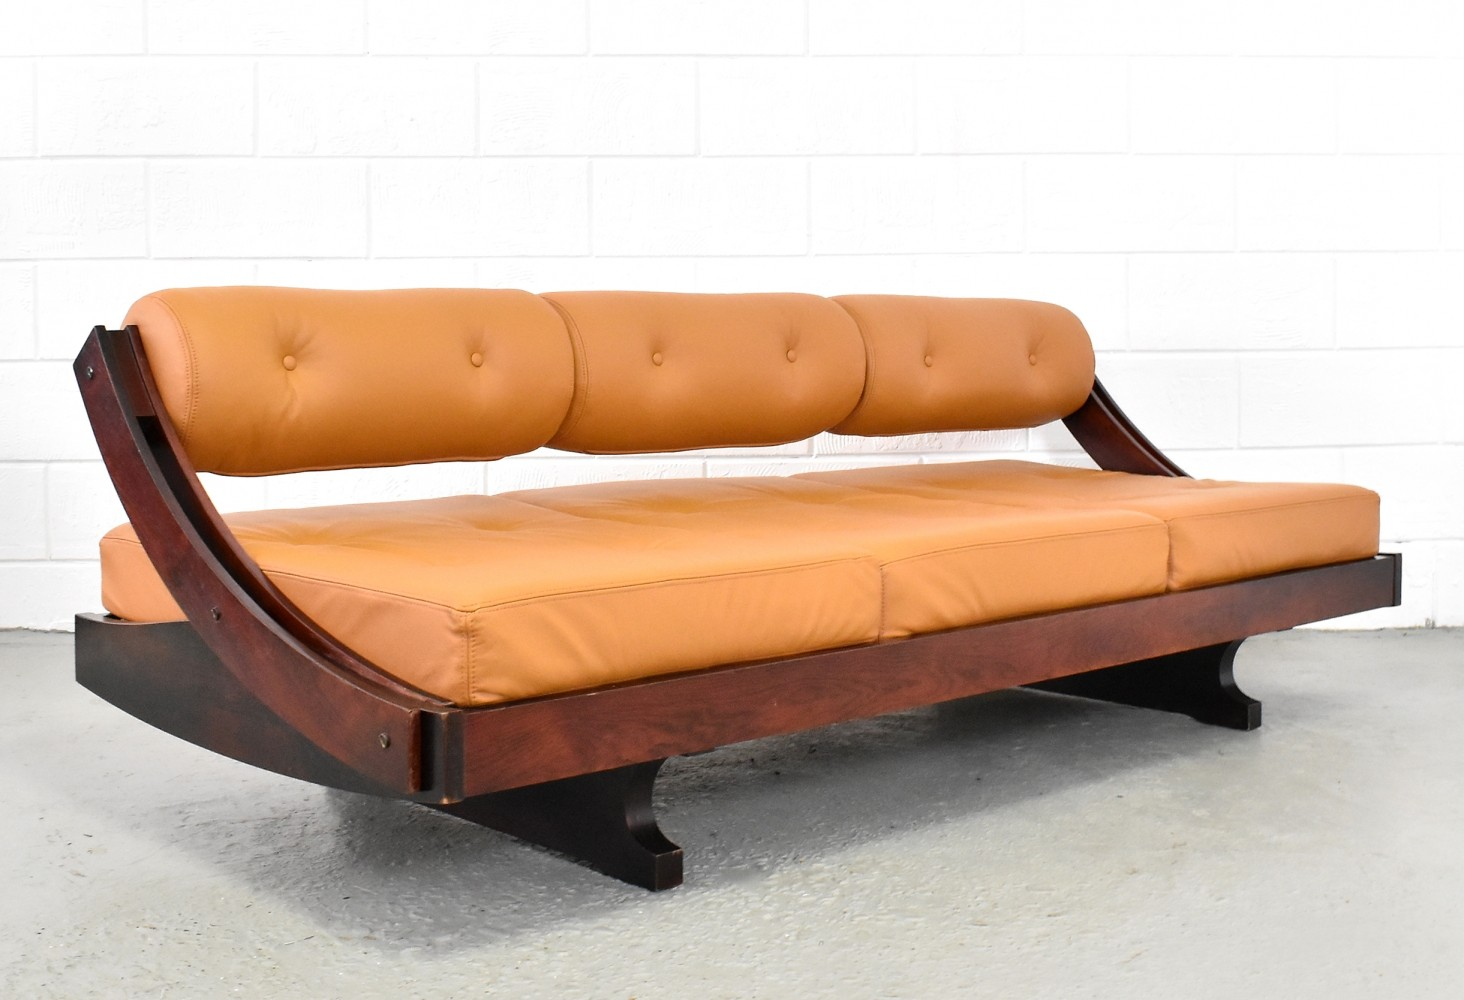 Sofa Gianni Gs195 Sofa By Gianni Songia For Sormani, 1980s | #83253